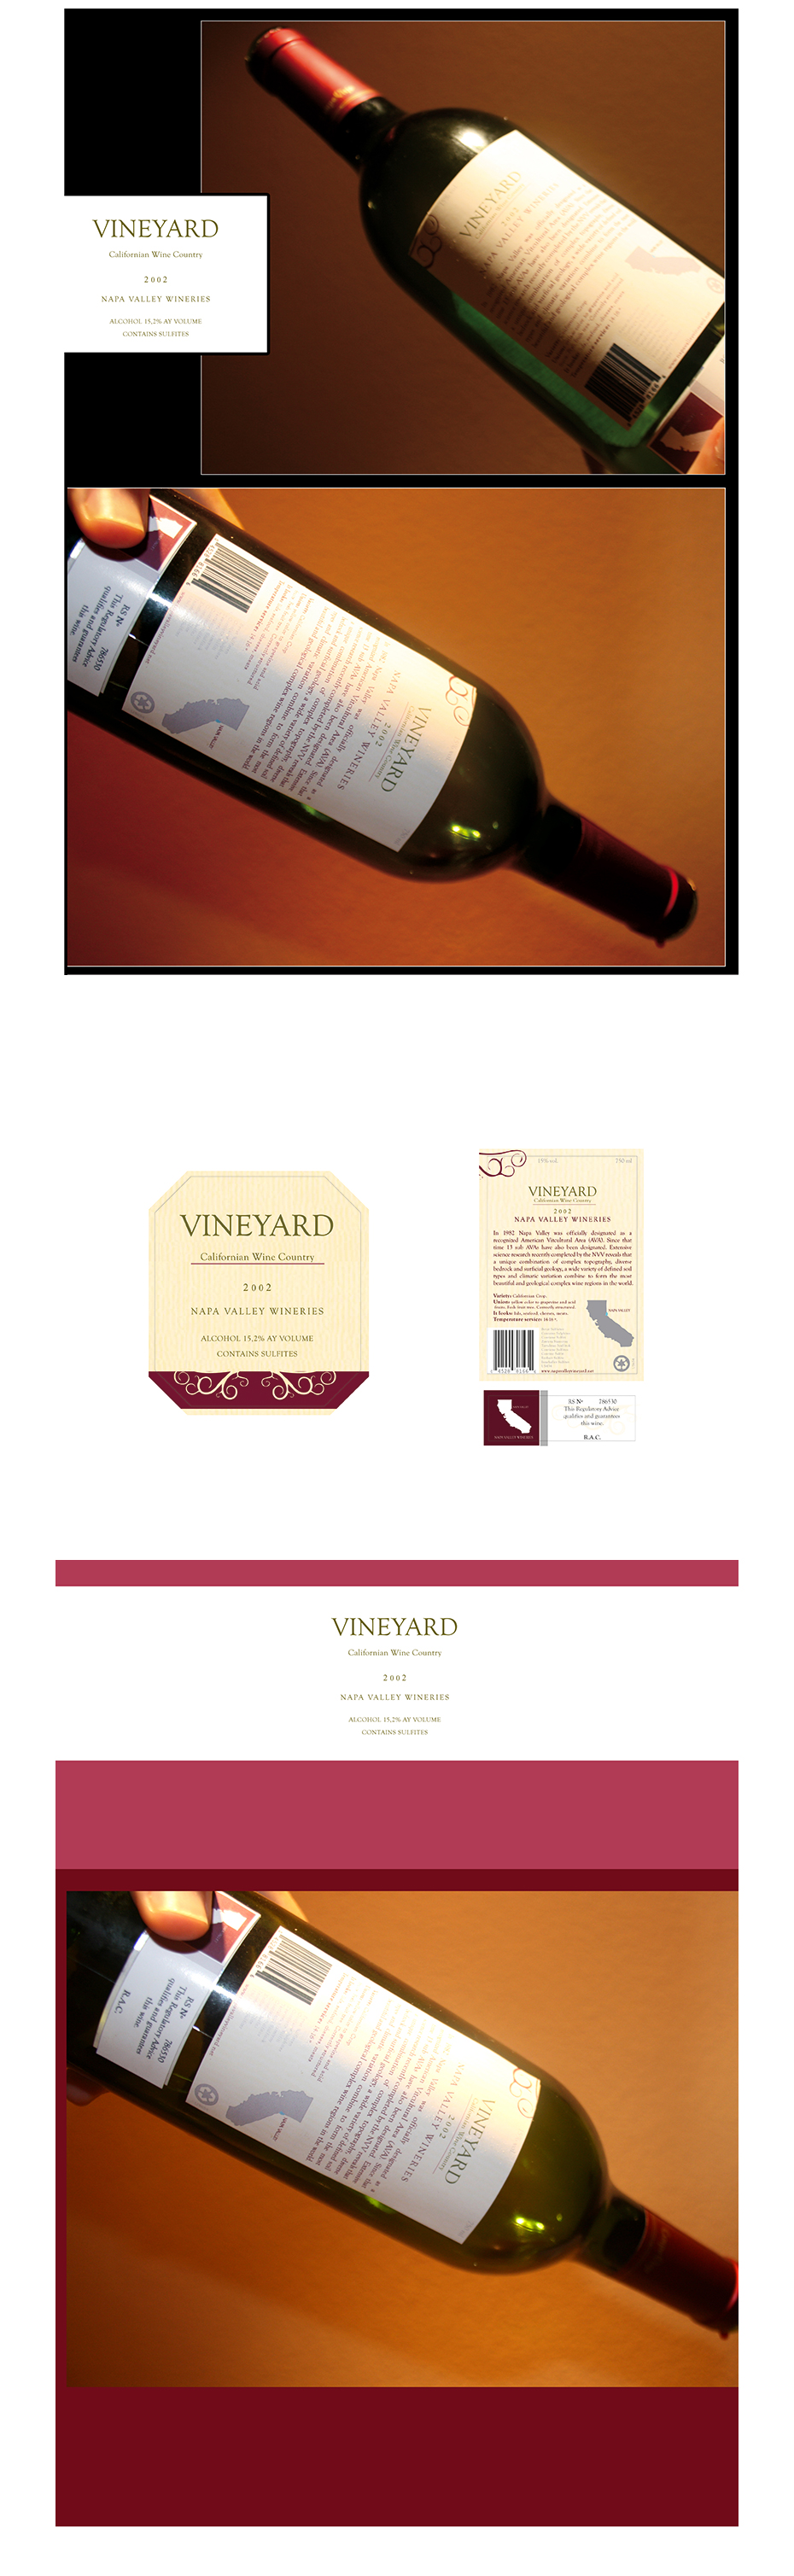 Vineyard California wines piezas